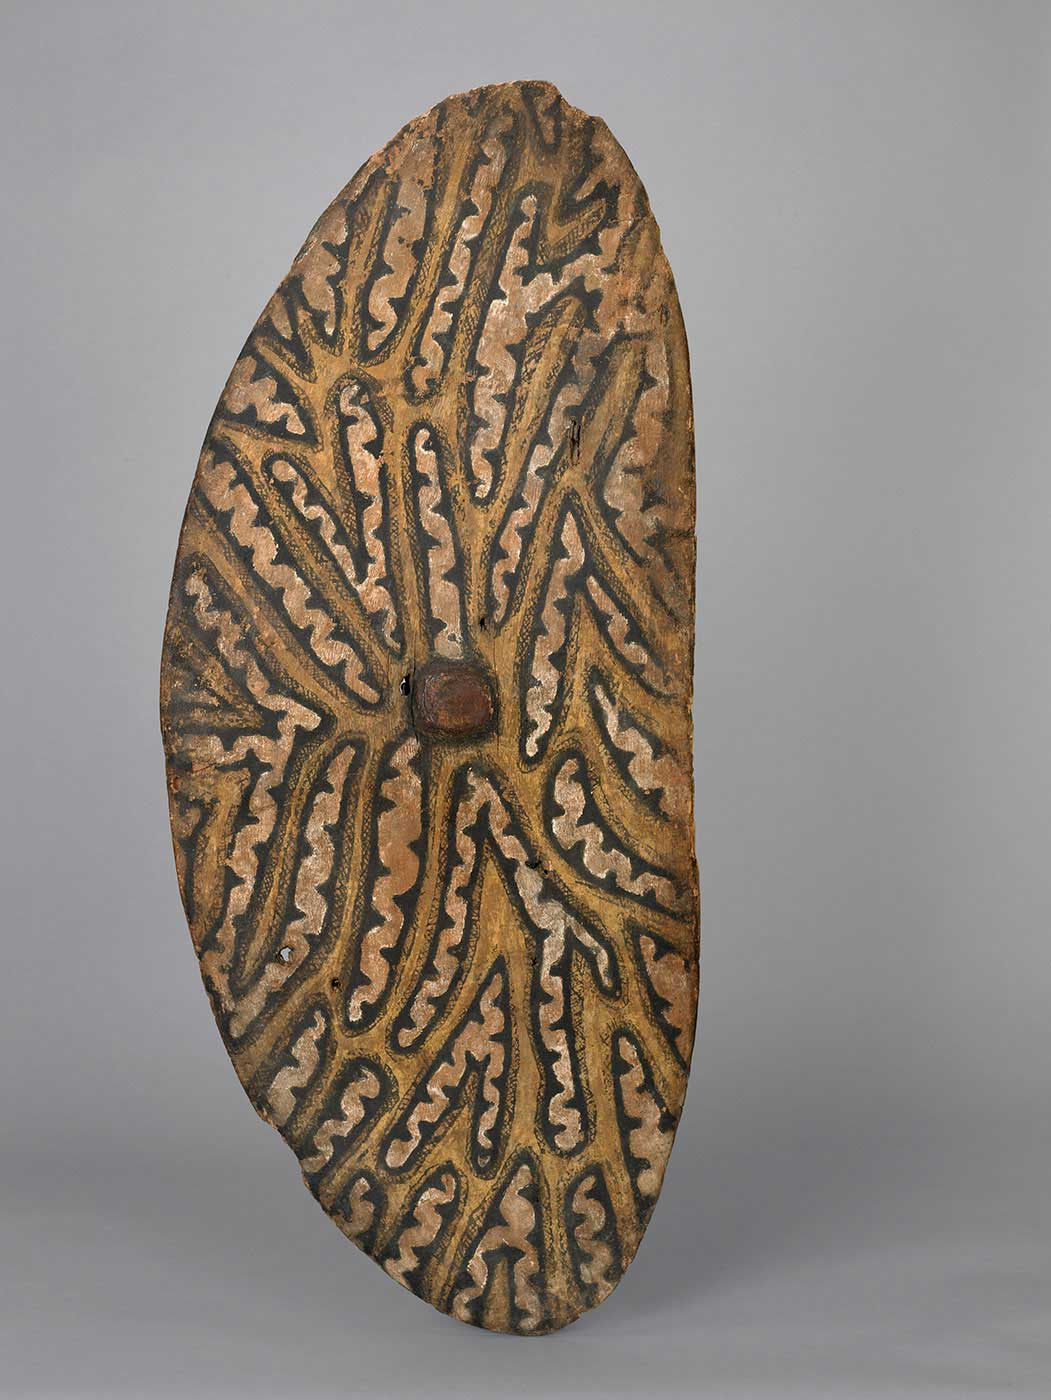 Oblong shaped wooden shield with an intricate deign applied to the surface. - click to view larger image